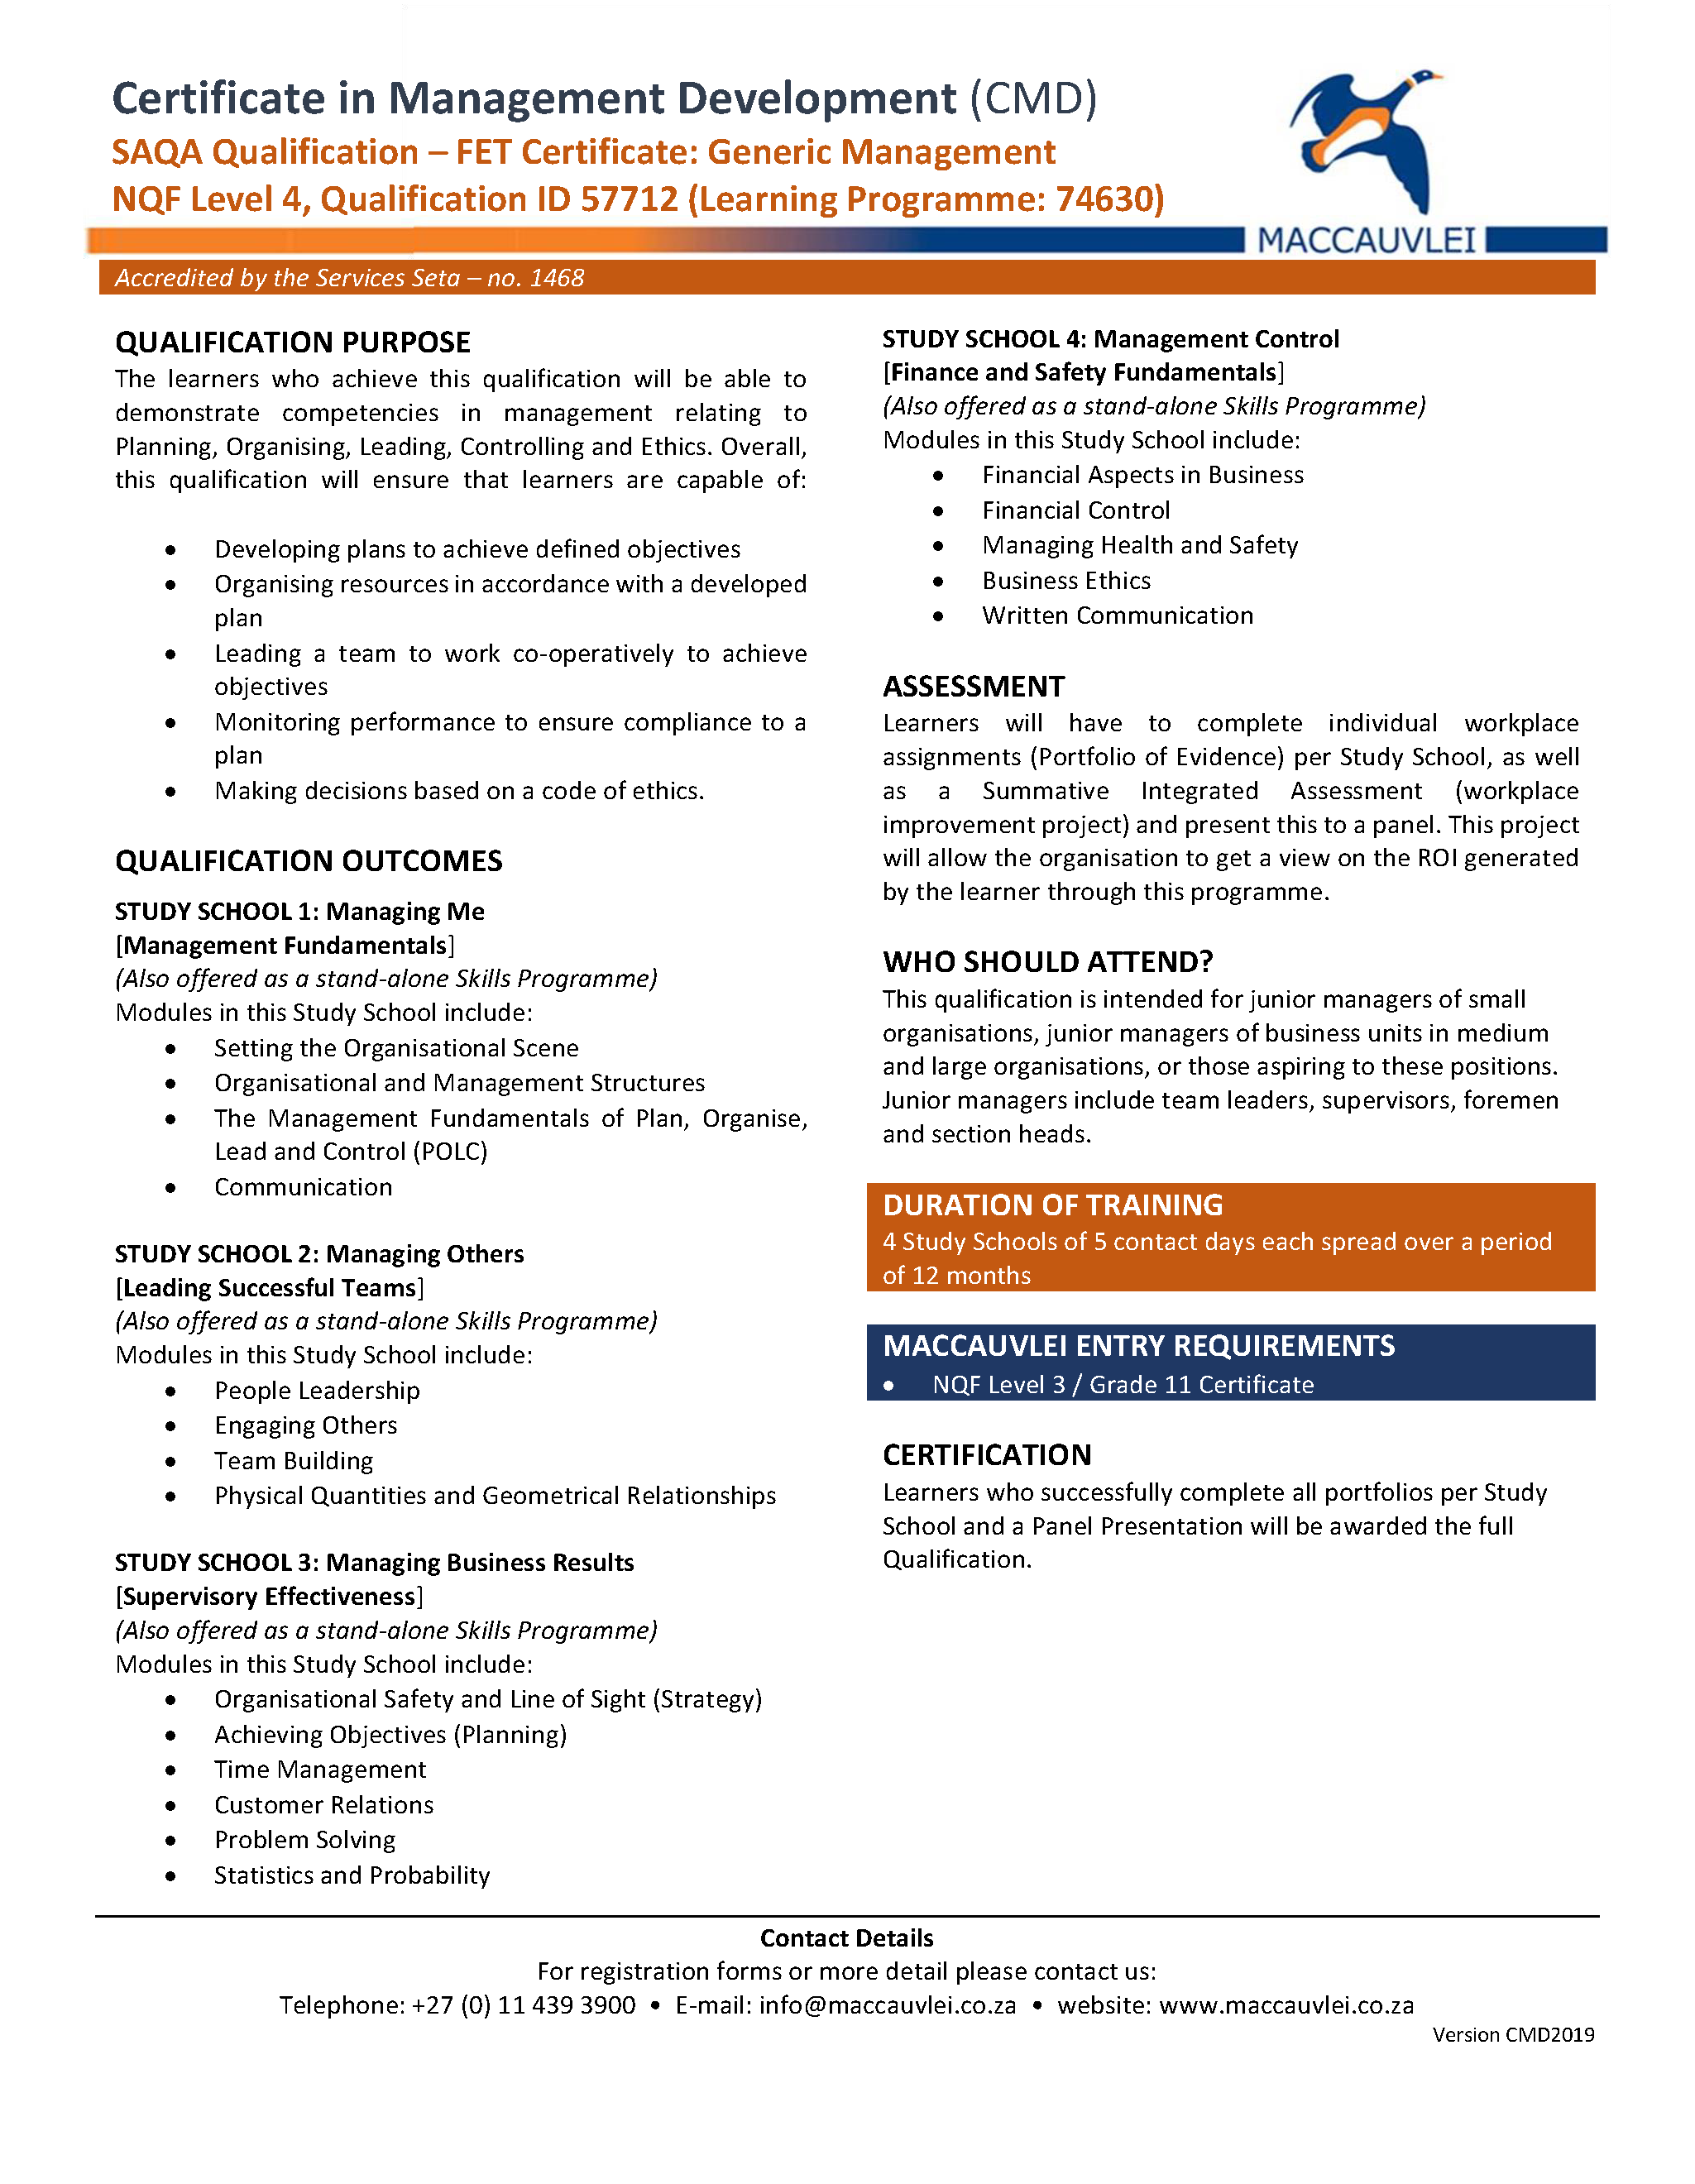 CMD - Certificate in Management Development_Page_1